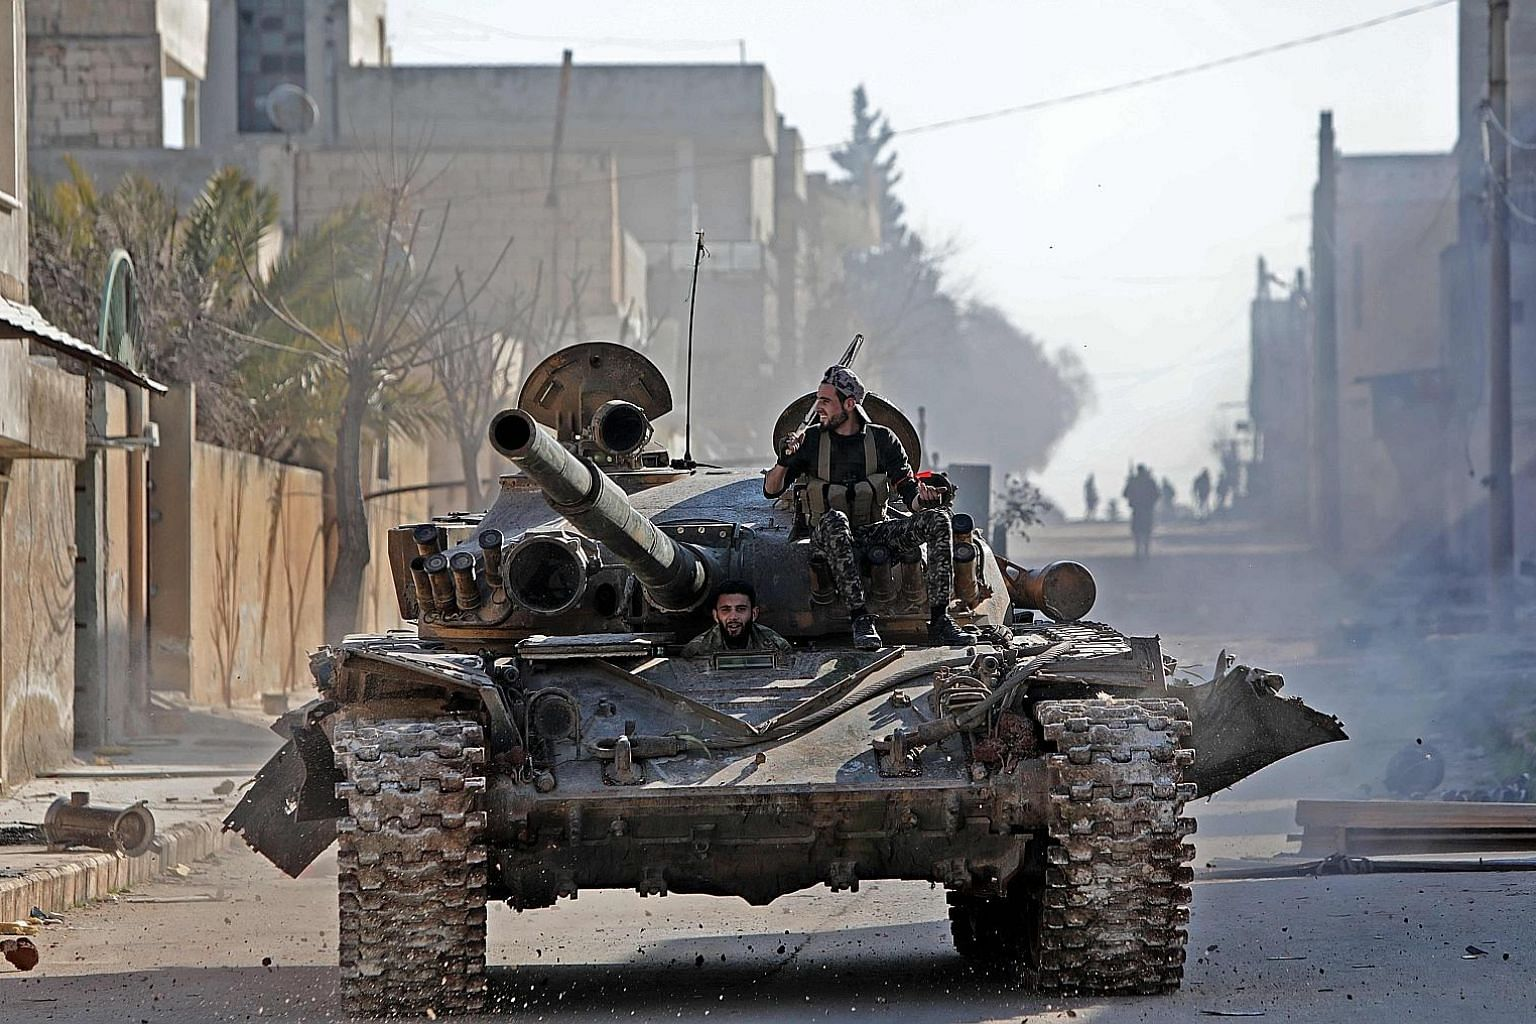 Turkey-backed Syrian fighters riding in a tank on Thursday in the town of Saraqib, in the eastern part of Syria's Idlib province.